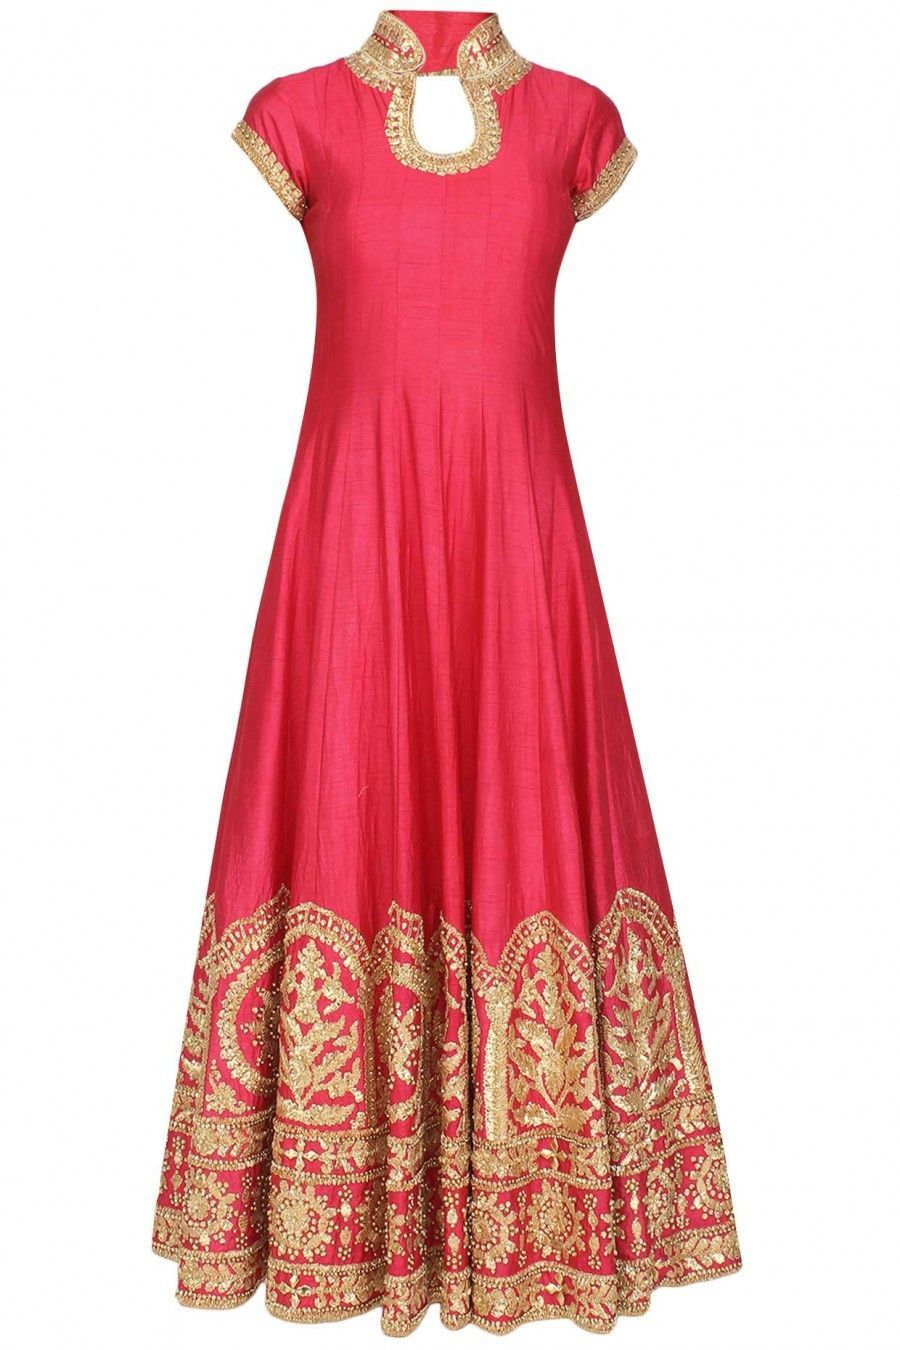 82a9c047b2 This anarkali is in pink raw silk fabric with gold gota patti lace work  highlighted with gold sequins embellishment on the ghera around the hem